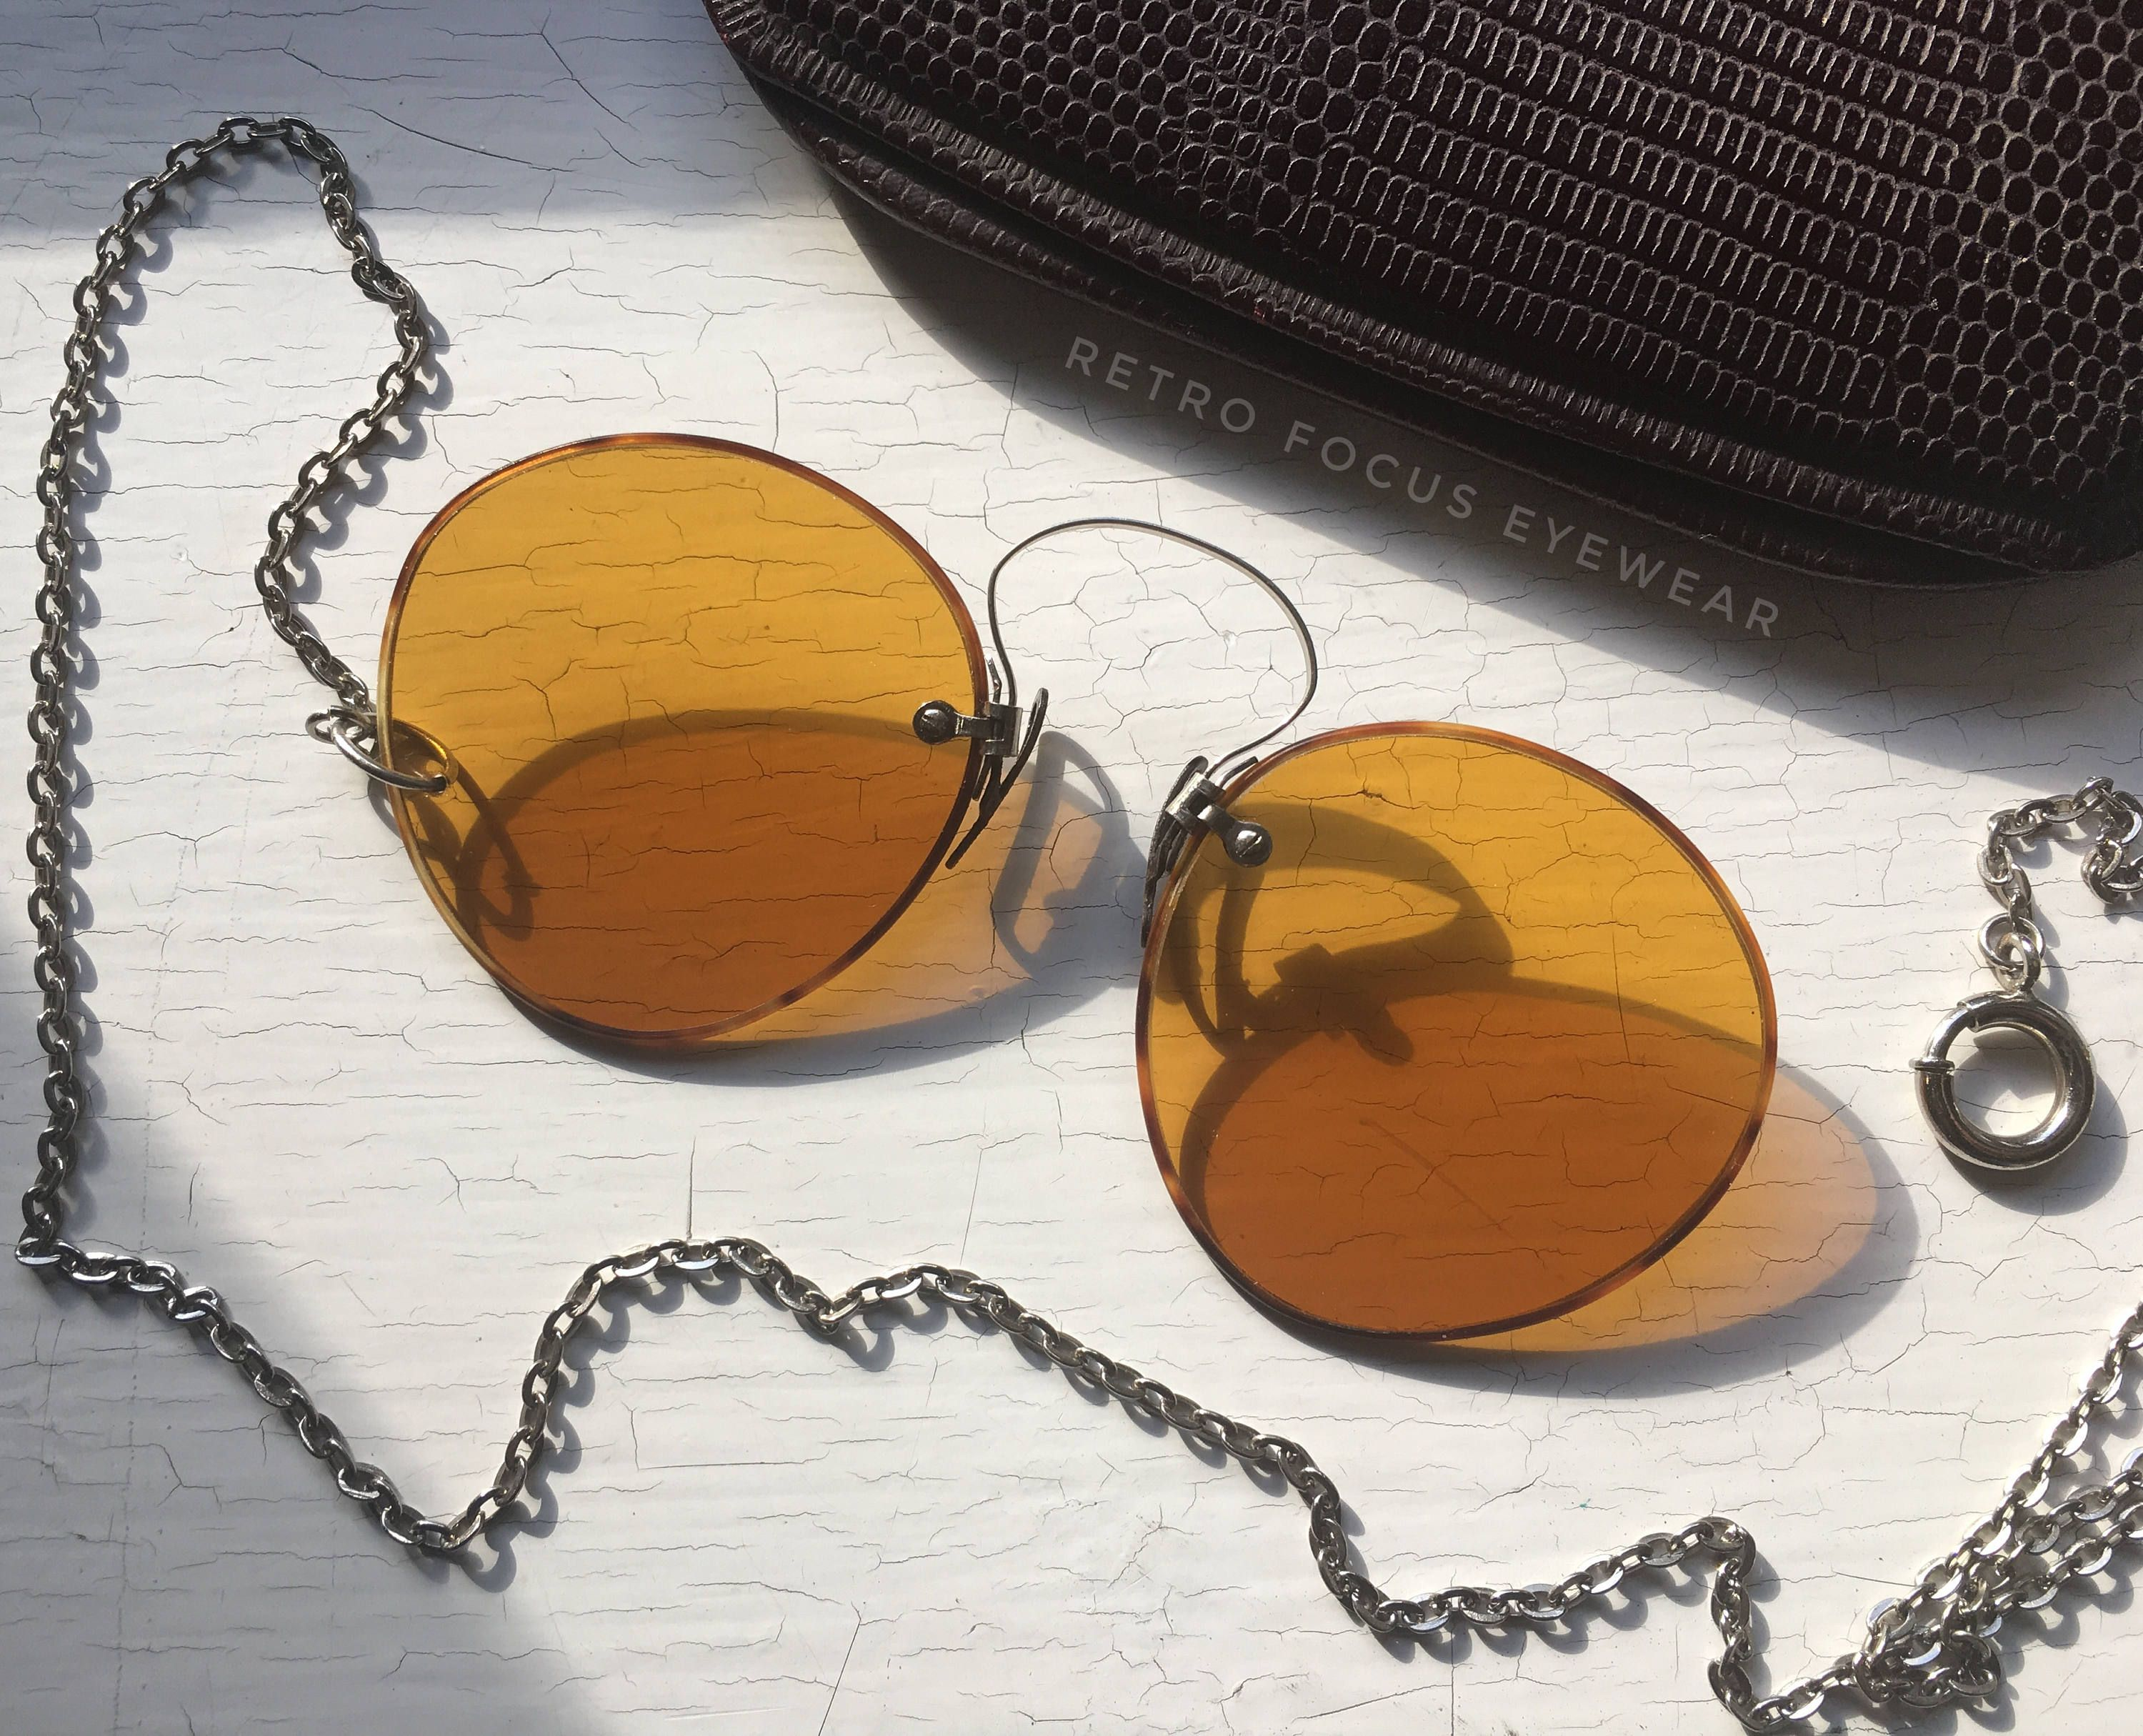 f38b10aa7a 1890 s Pince Nez Amber Yellow Lenses Clip On Nose Sunglasses w Chain  Menswear Fashion Goth Retro Steampunk Gothic Victorian Eyewear Vintage